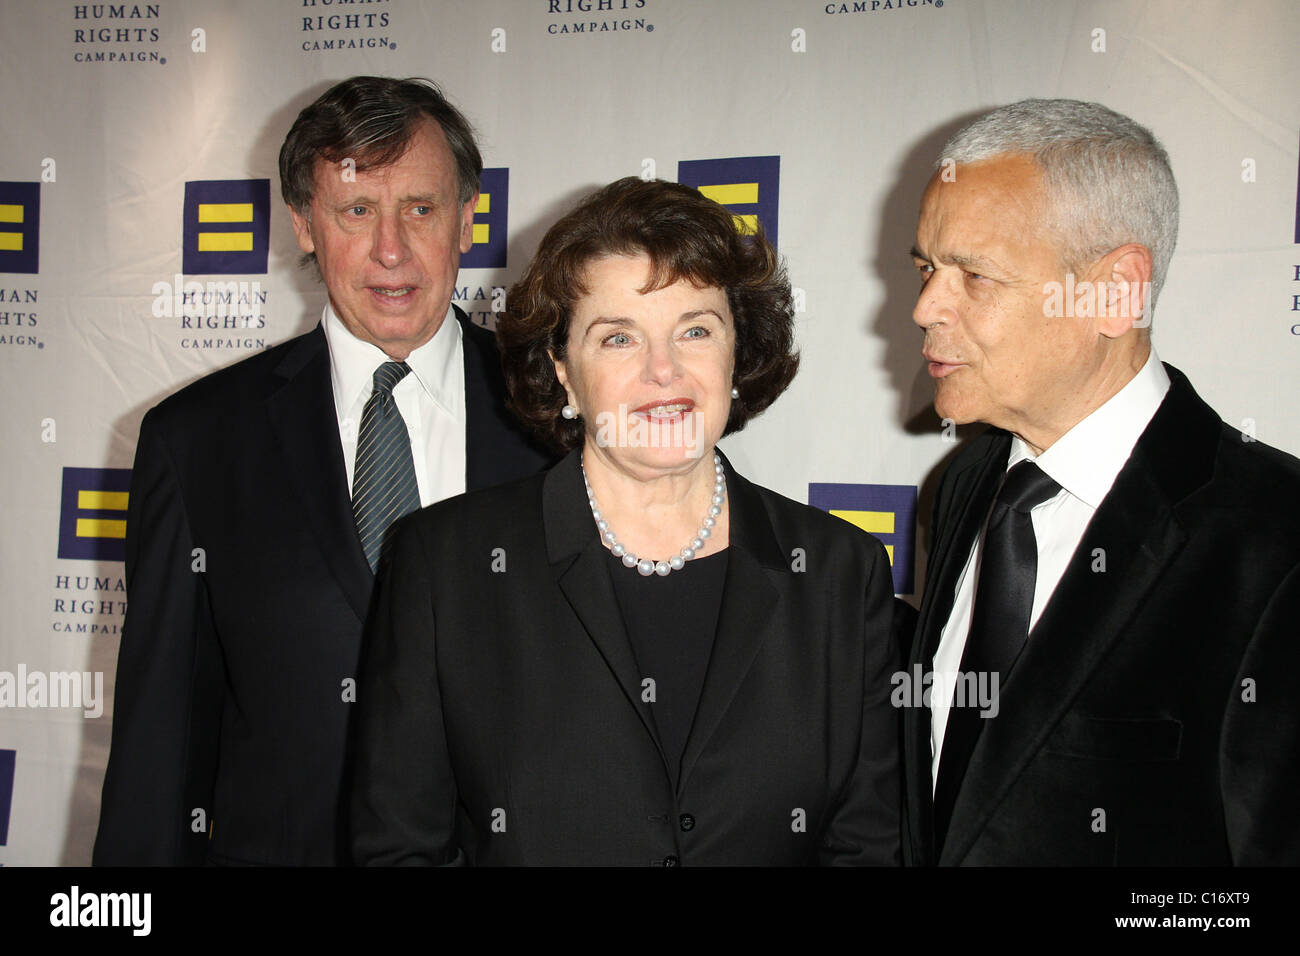 Dianne Feinstein and Julian Bond Human Rights Campaign's annual gala and hero awards held at the Hyatt Regency - Stock Image